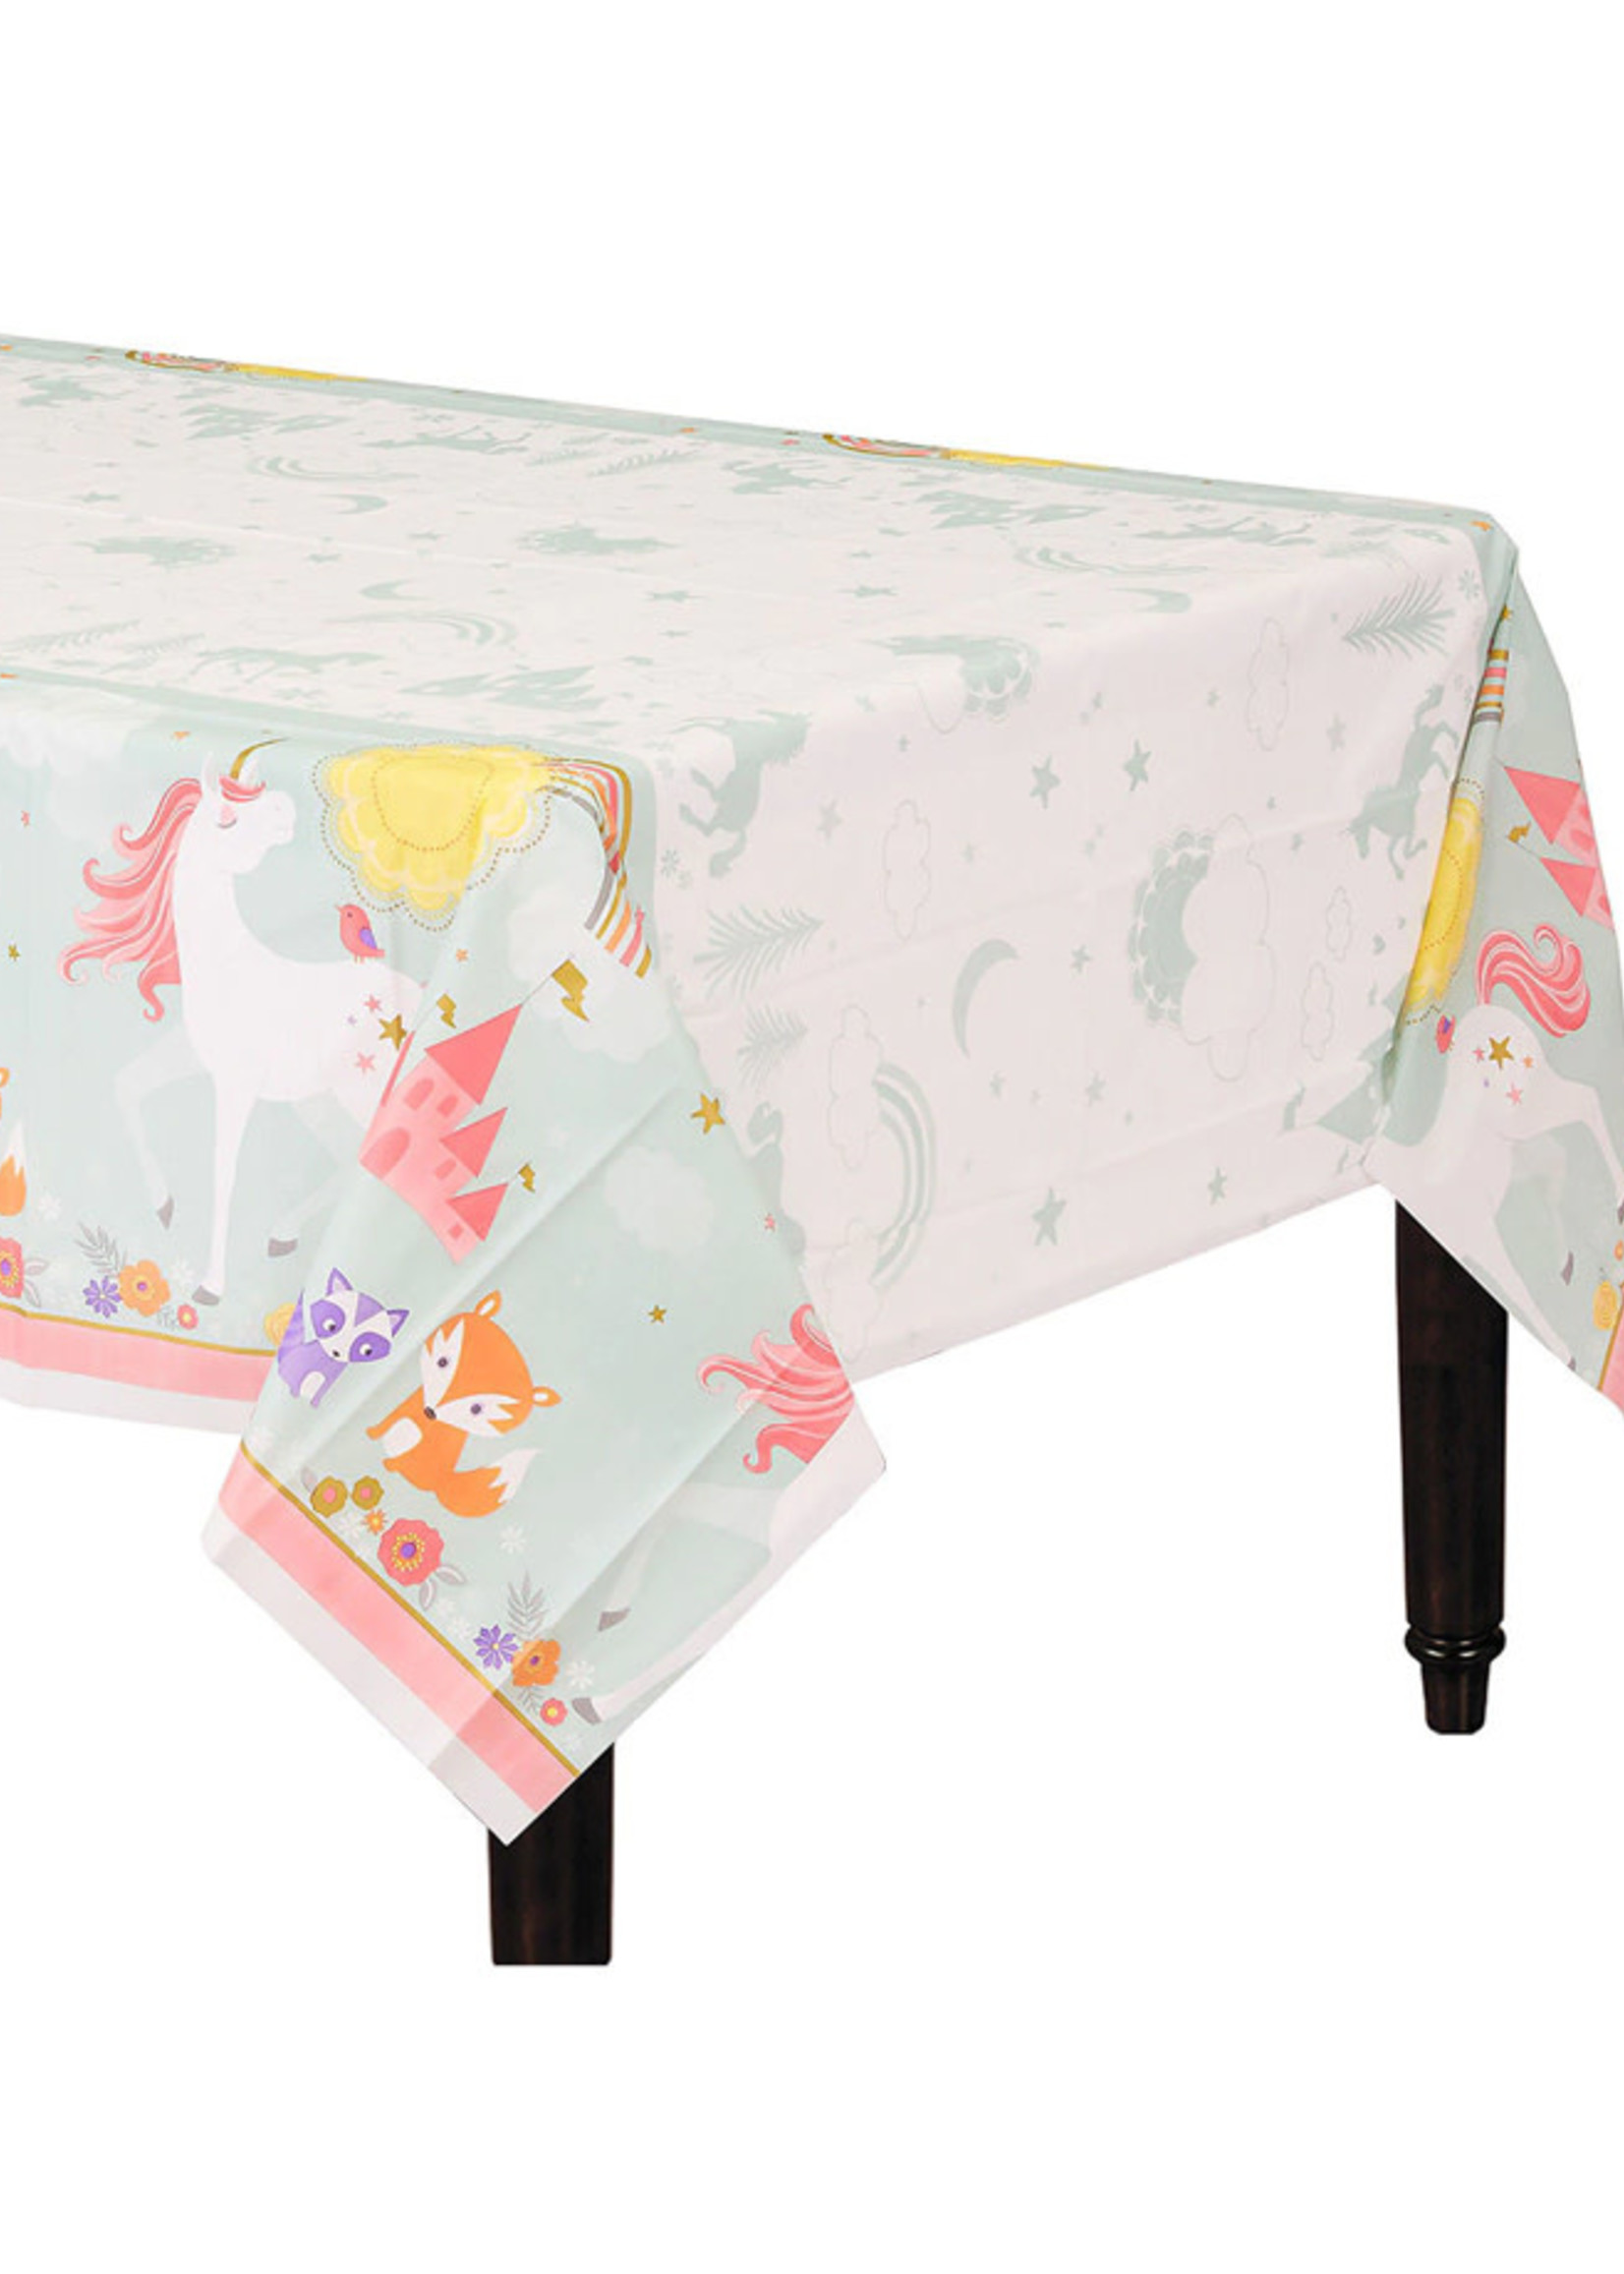 Magical Unicorn Table Cover